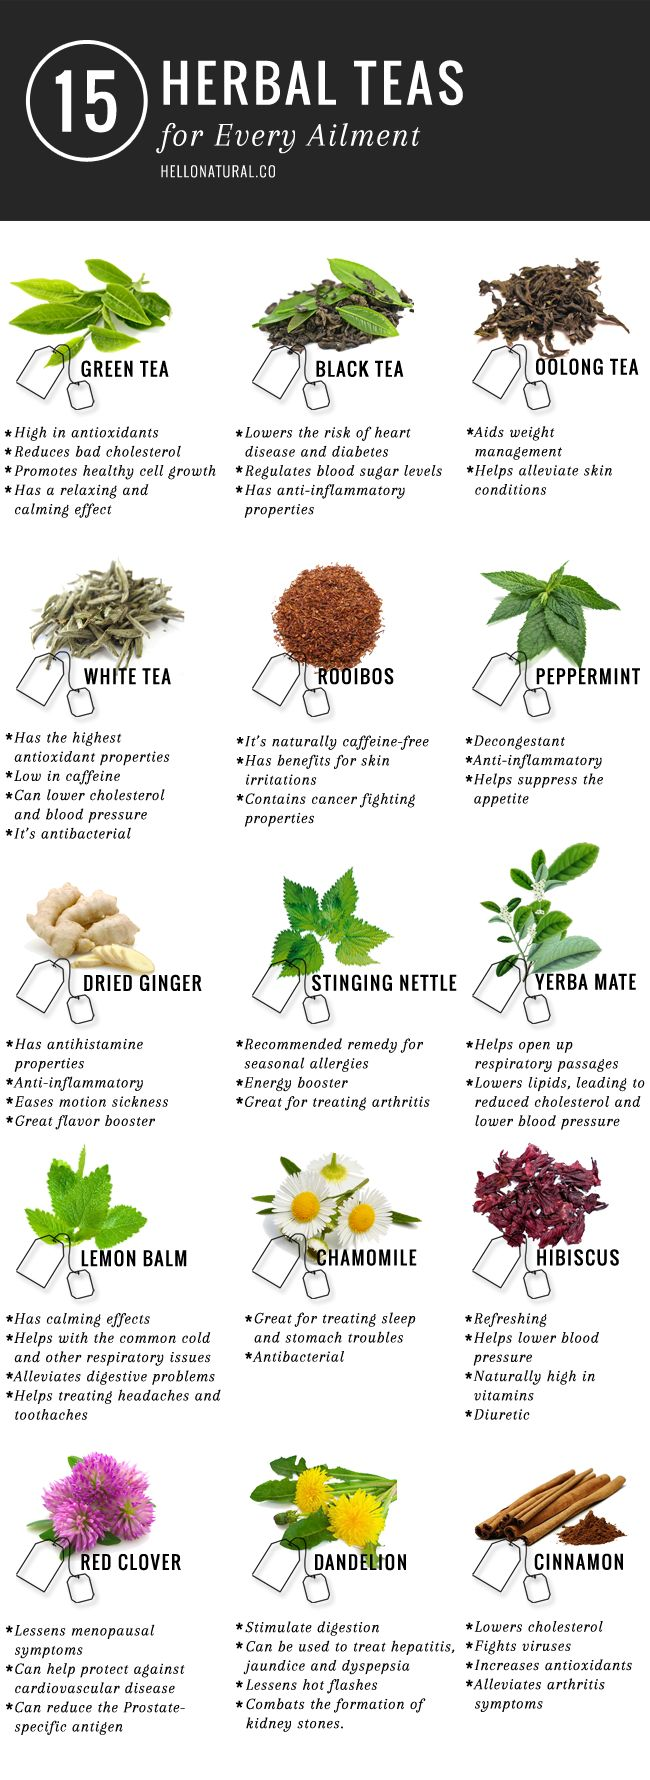 The Health Benefits of Tea + 15 Herbal Teas for Any Ailment | HelloNatural.co #infographic #drinks